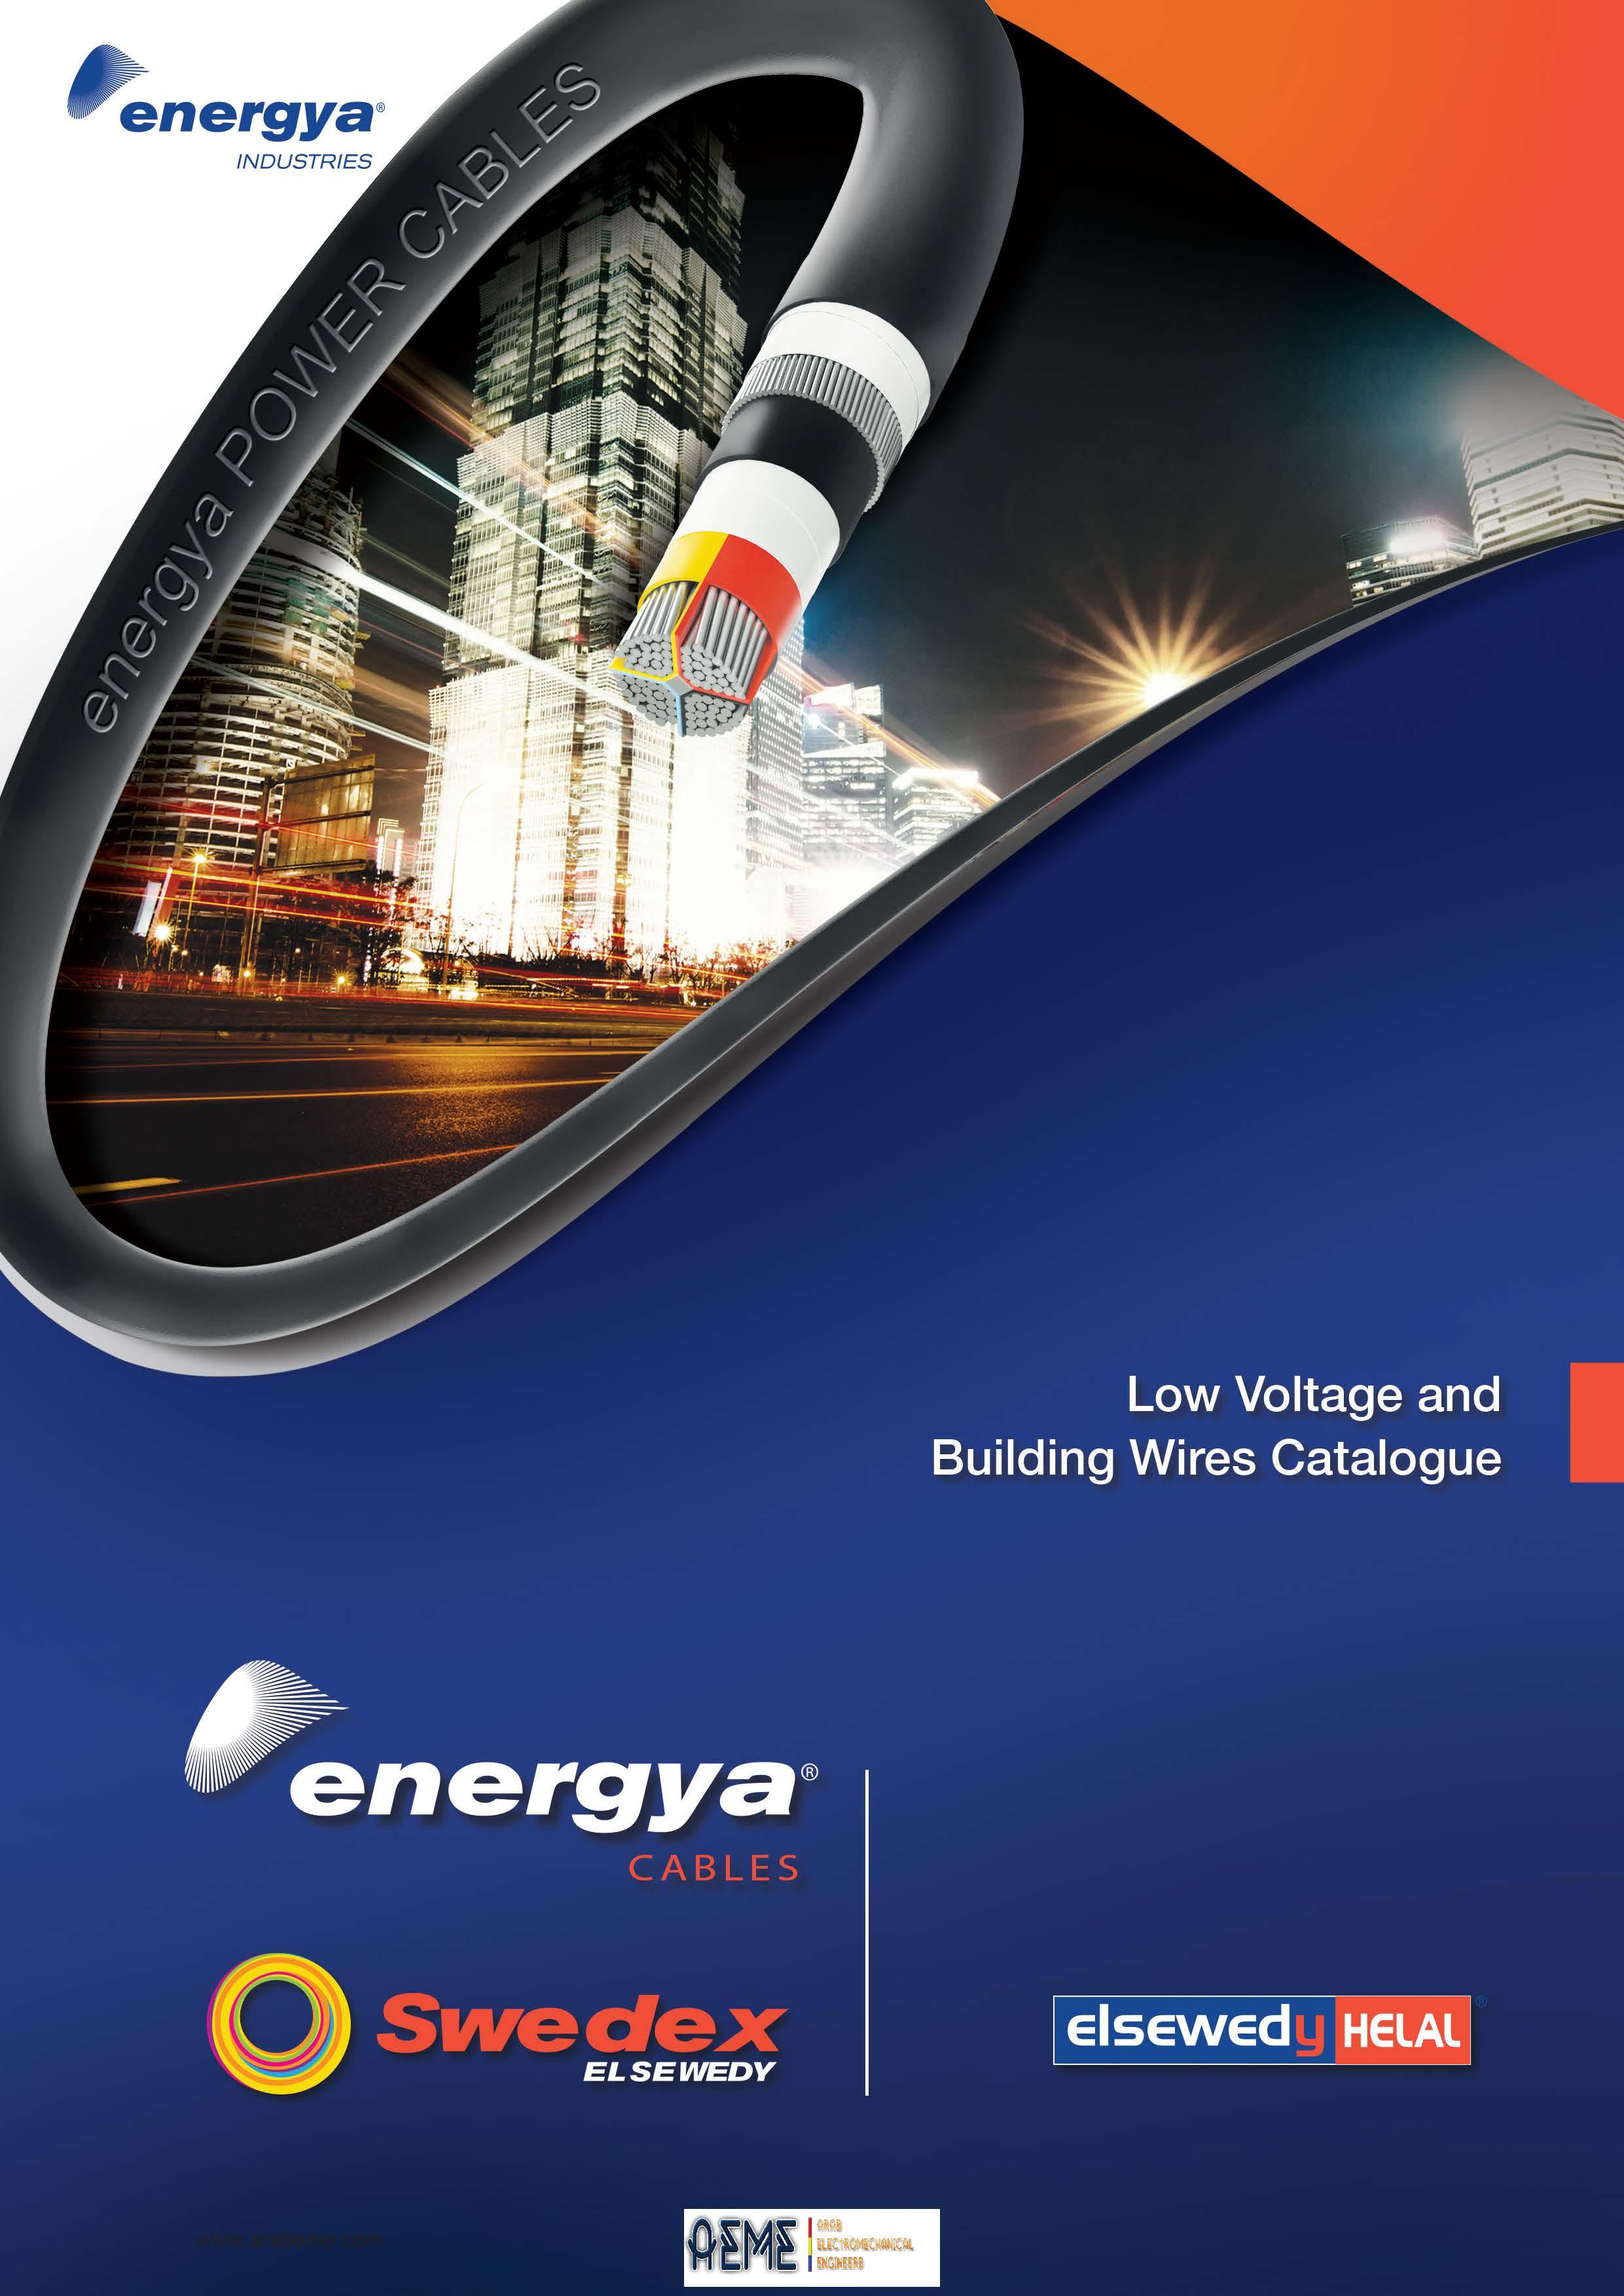 energya power cables